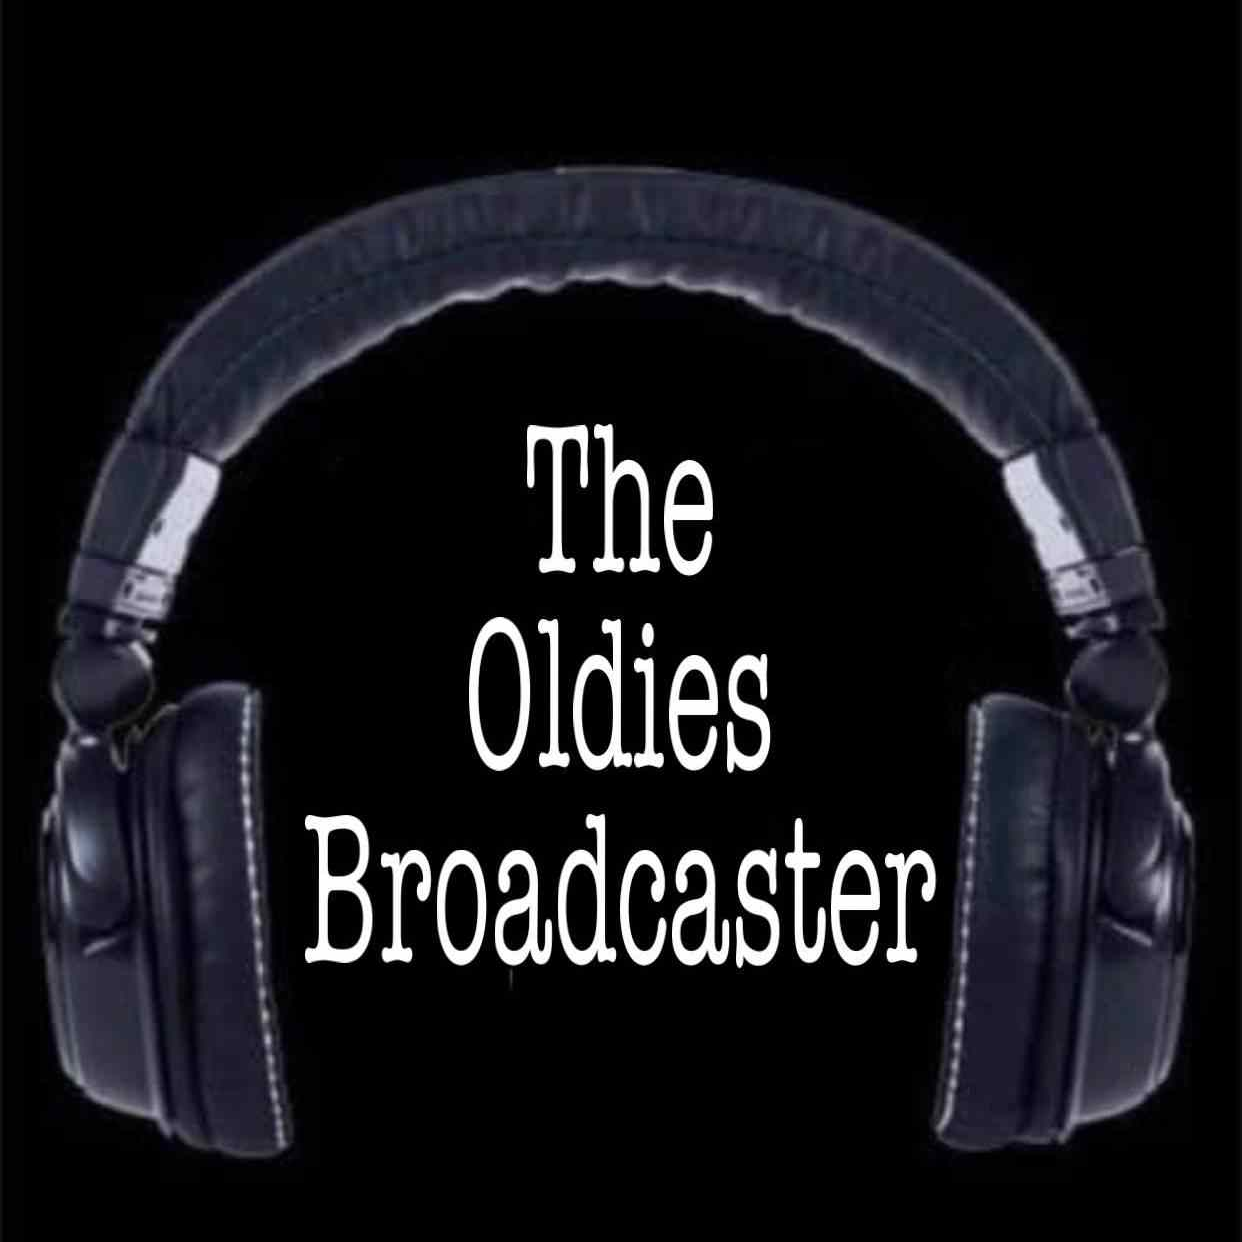 The Oldies Broadcaster Taking you Back to The Days When Mw Radio Ruled the Air Waves